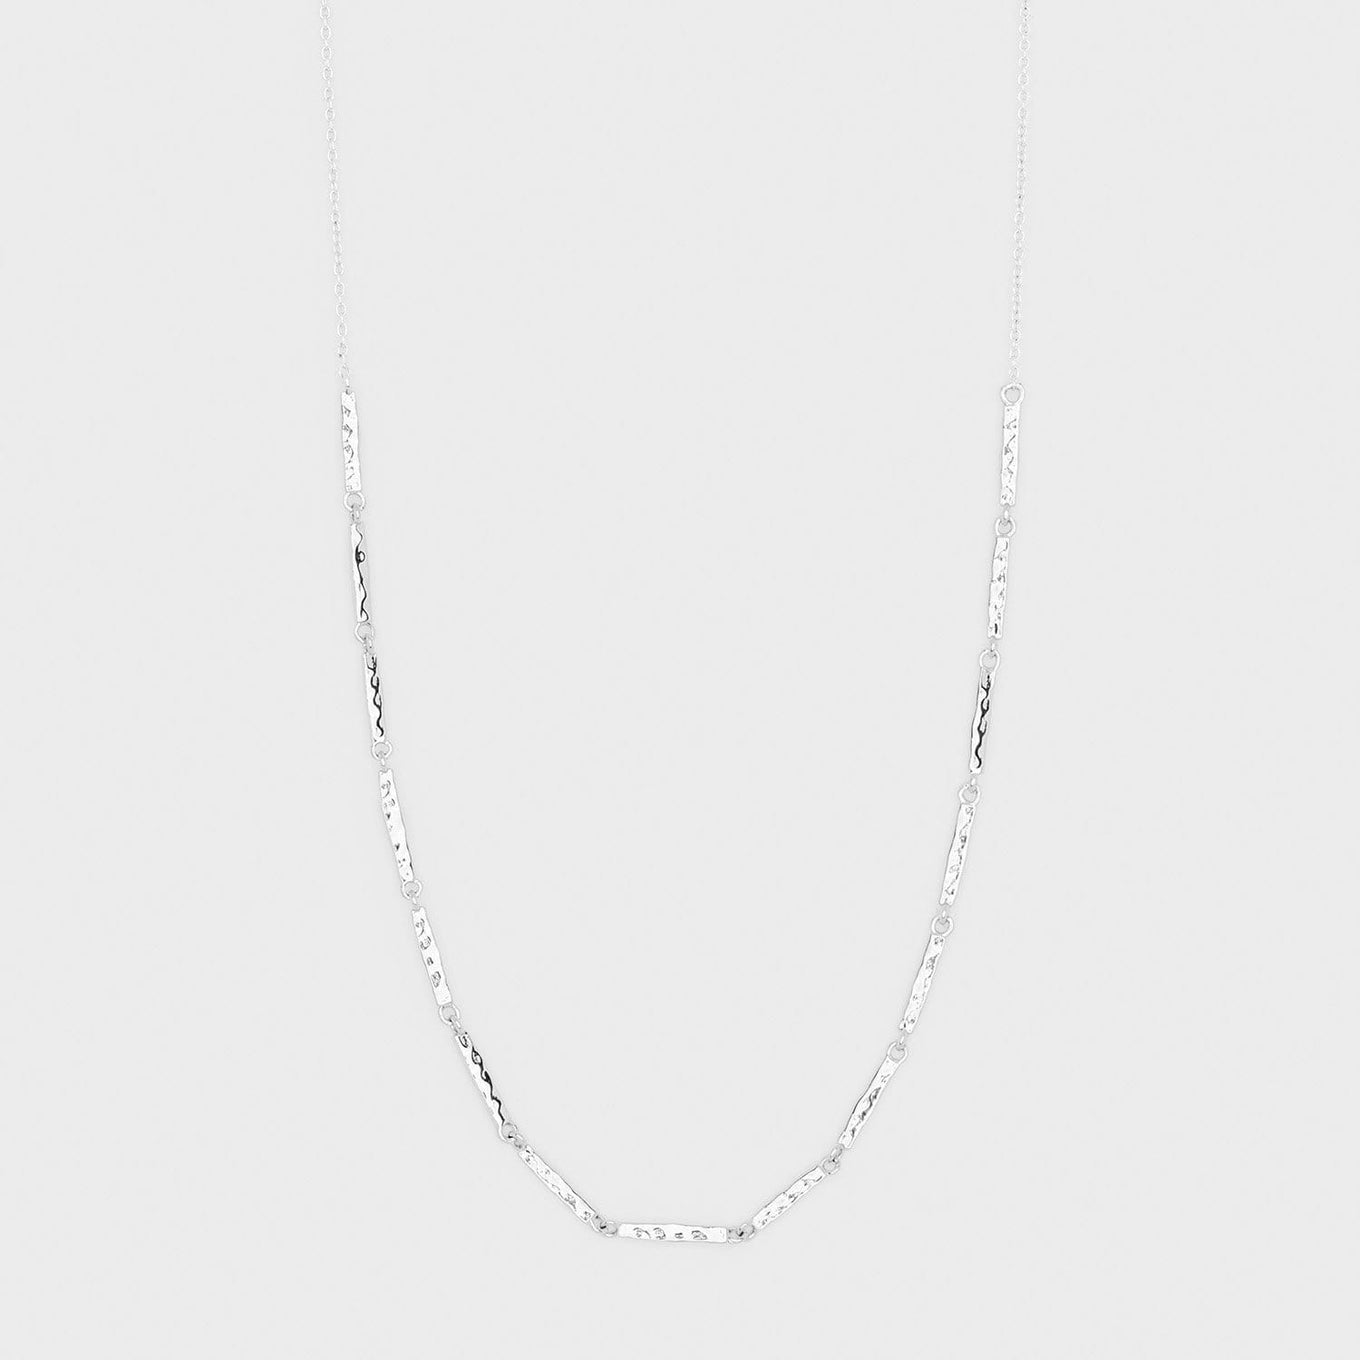 gorjana jewelry silver bar necklace, Balboa Bar Necklace